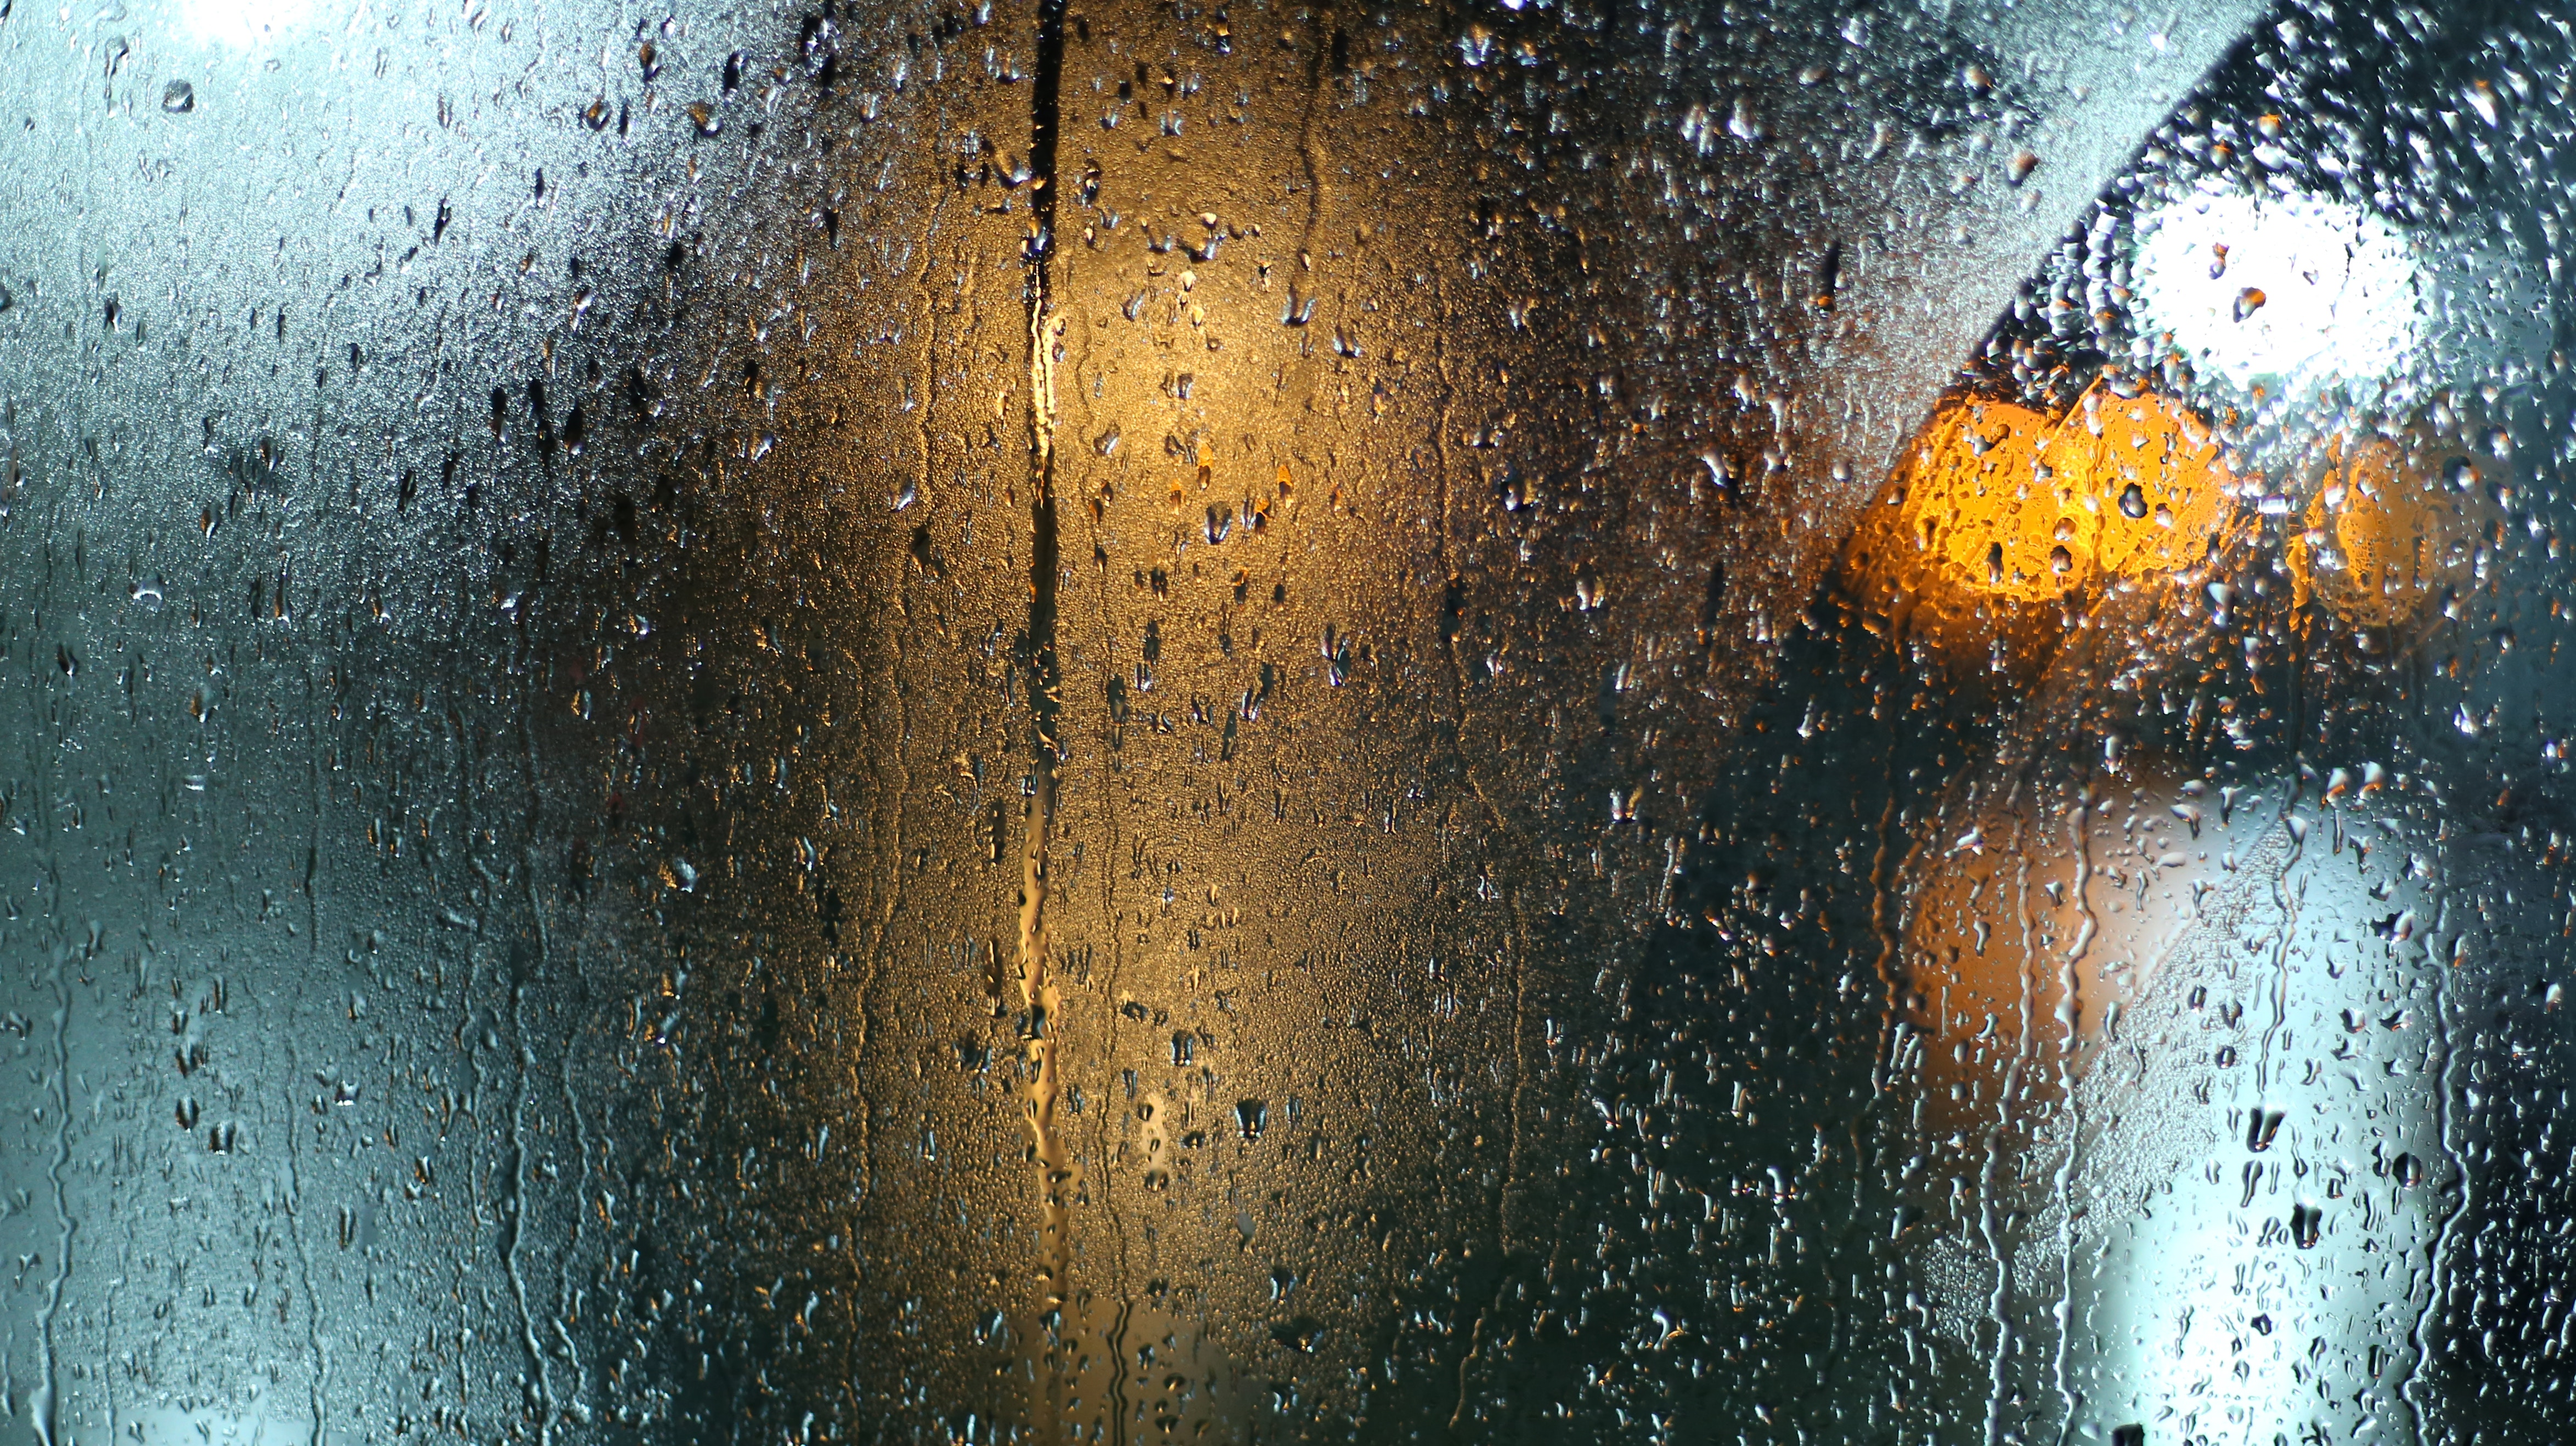 A picture of rain on a window